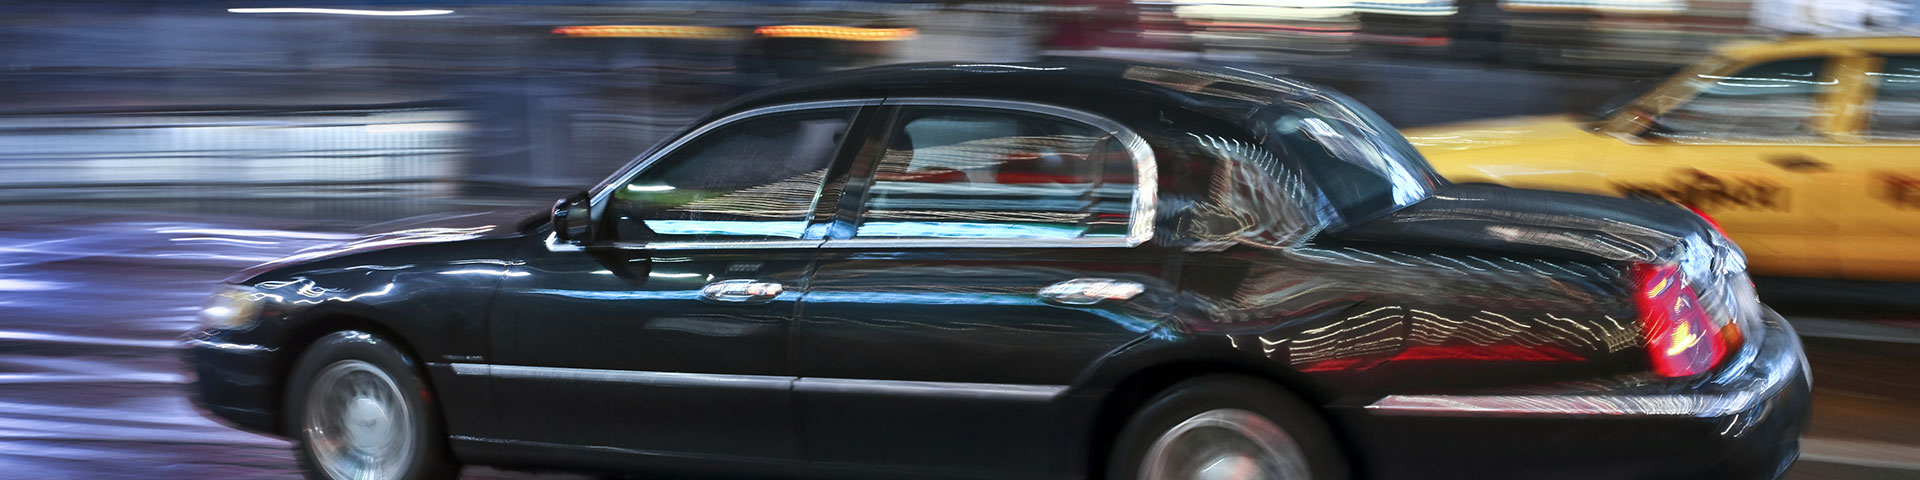 sedan-limo-motion-blur